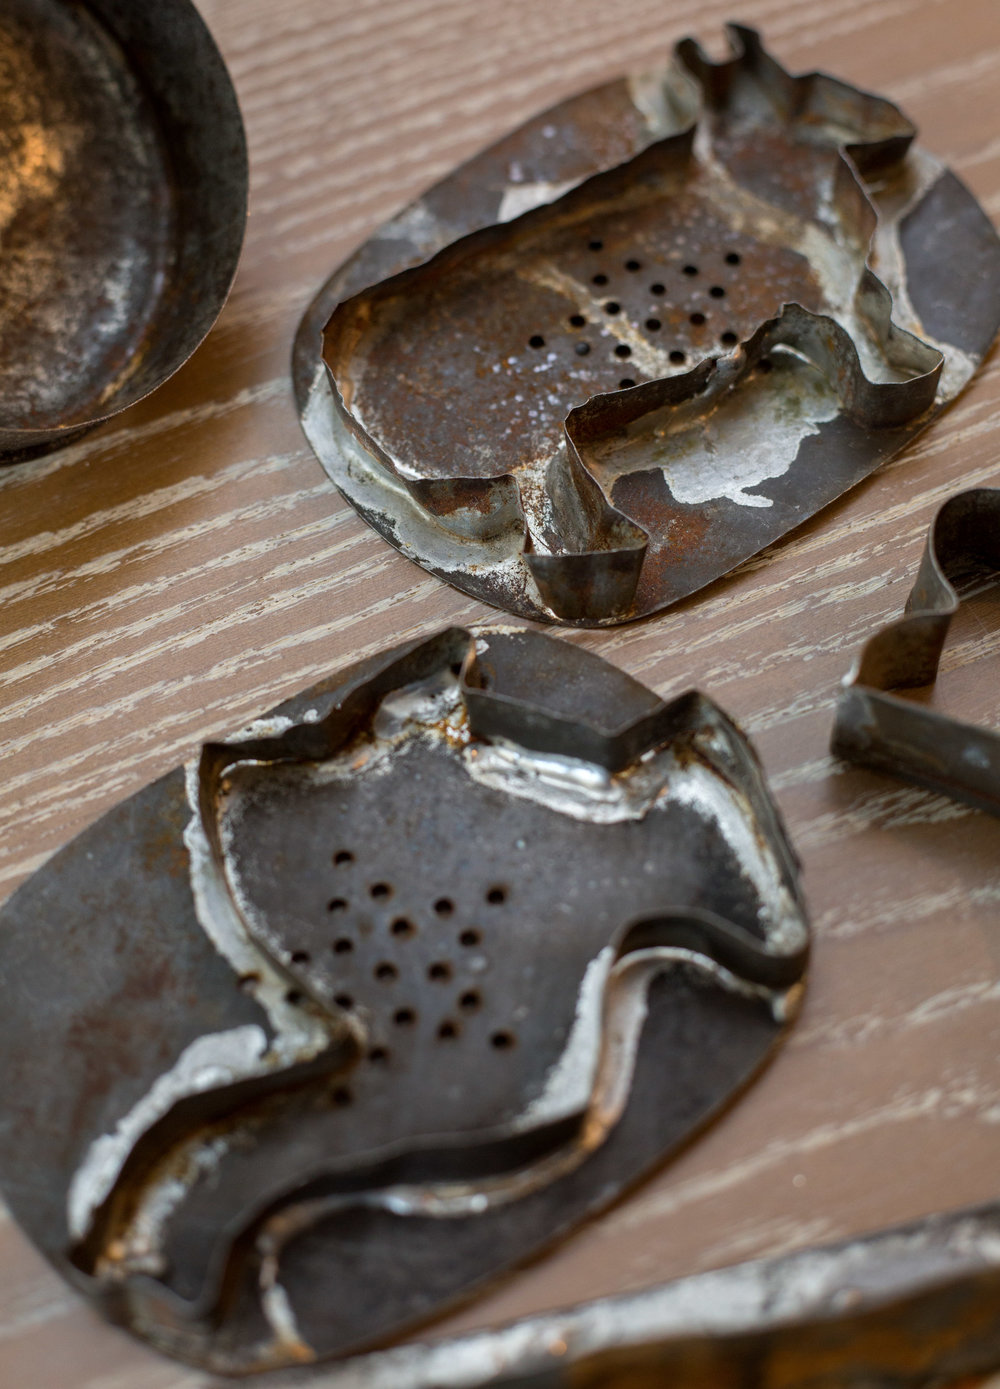 The cookie cutters dating back to the late 1800's crafted by Amy Bless's great-grandfather to be used with the family anise cookie recipe in Perrysburg, Oh. on Friday, Nov. 11, 2016.